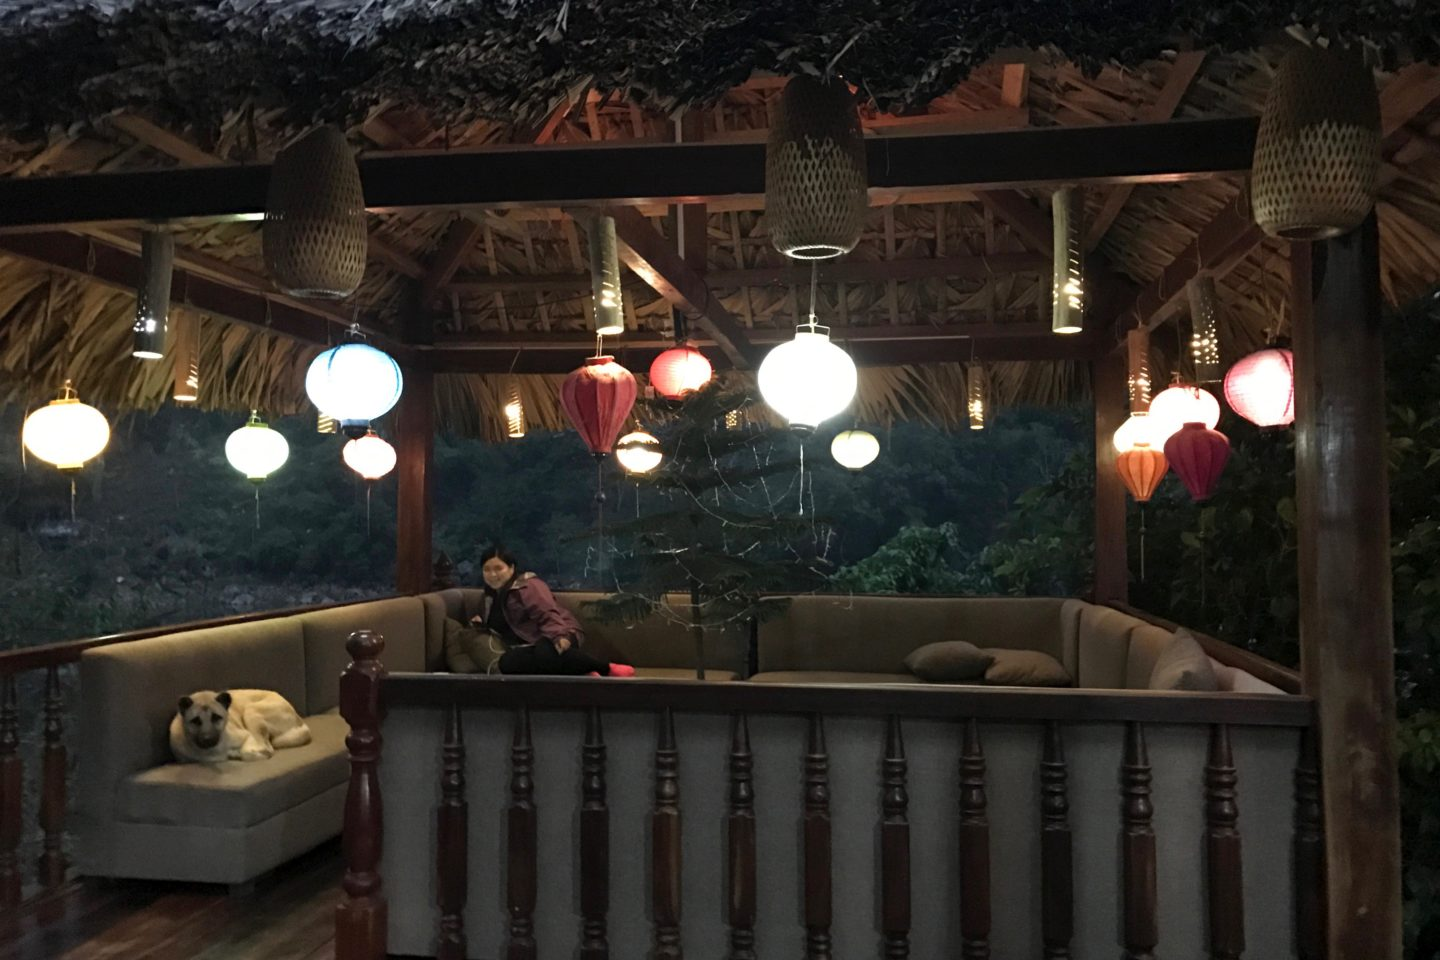 Mr. Linh resting area with lanterns